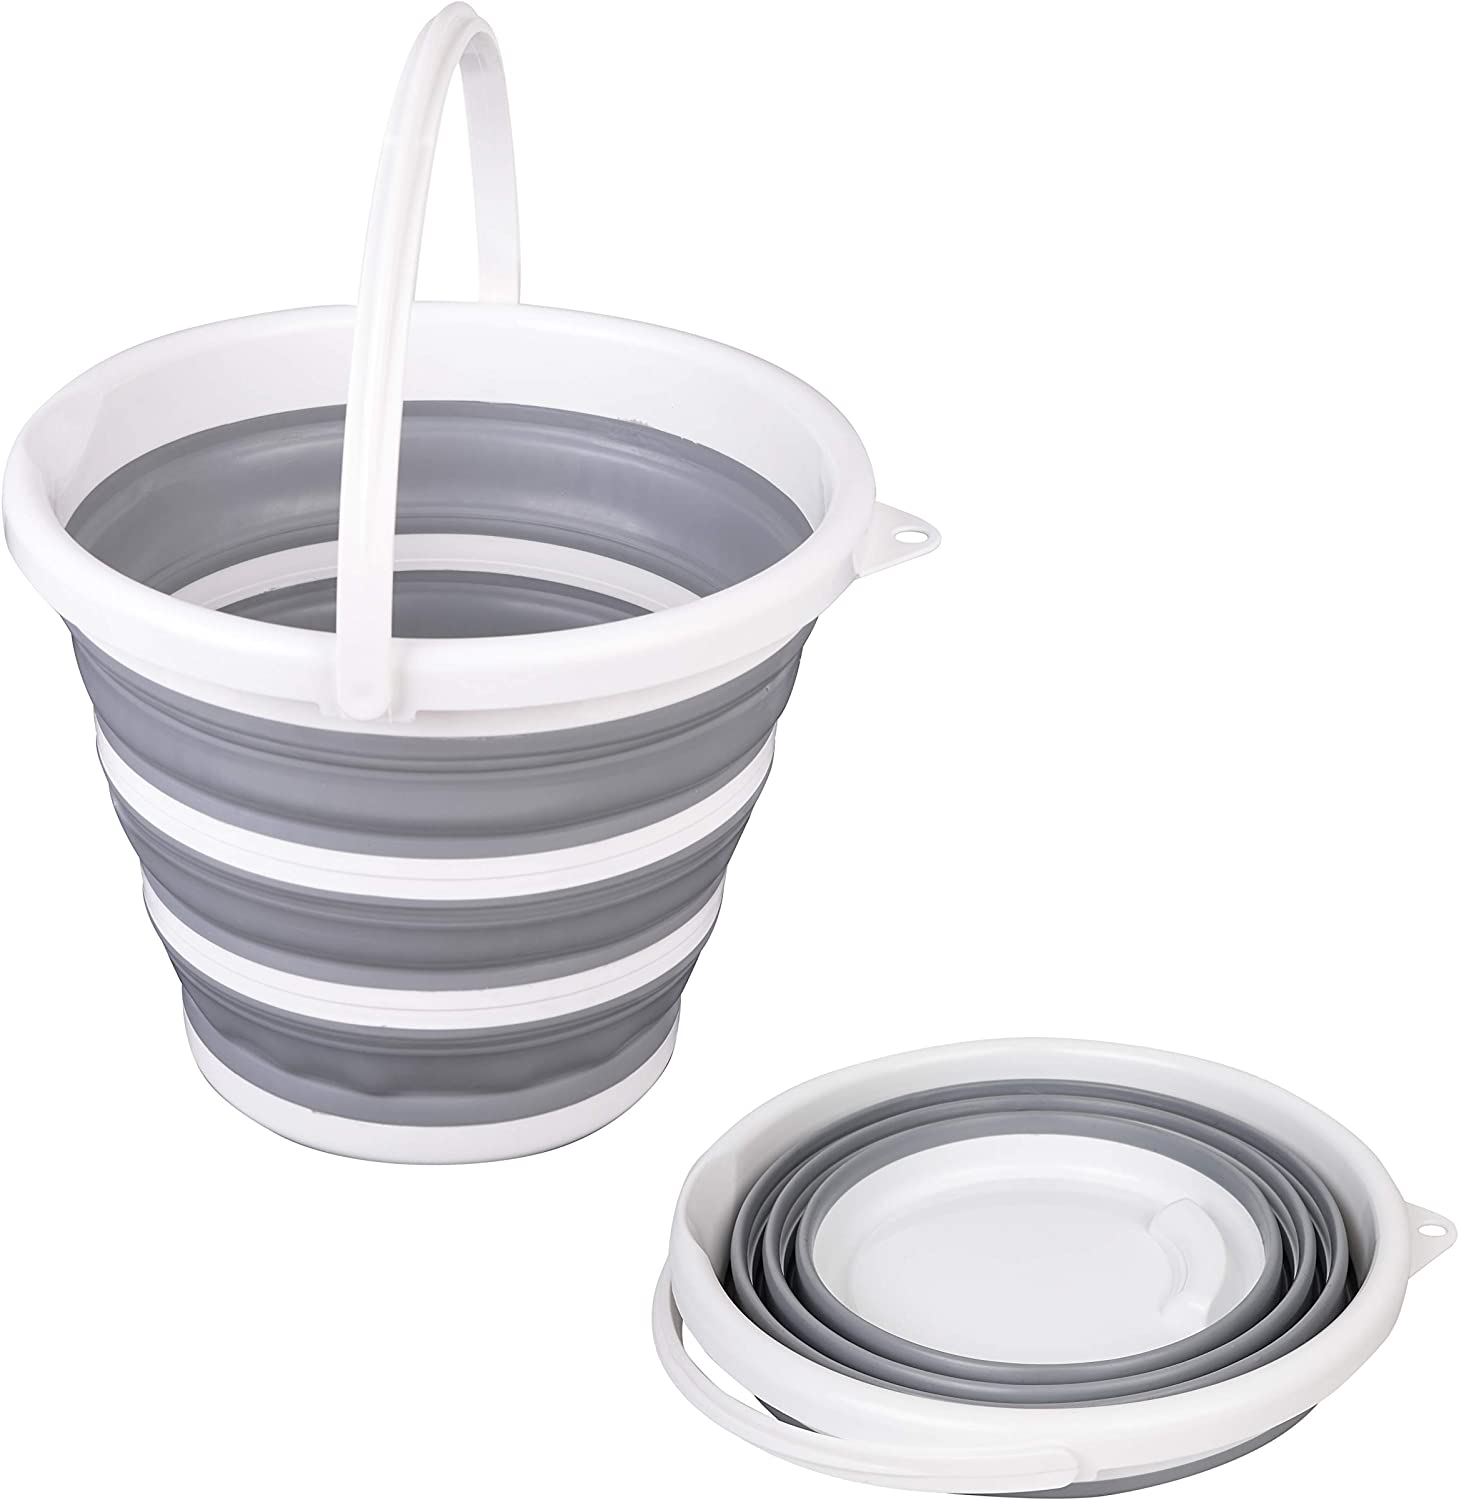 TOLEAD Collapsible Bucket with Handle, Portable Folding Buckets for Cleaning, Space Saving Water Container for Gardening, Camping, Fishing, Outdoor Survival, Round